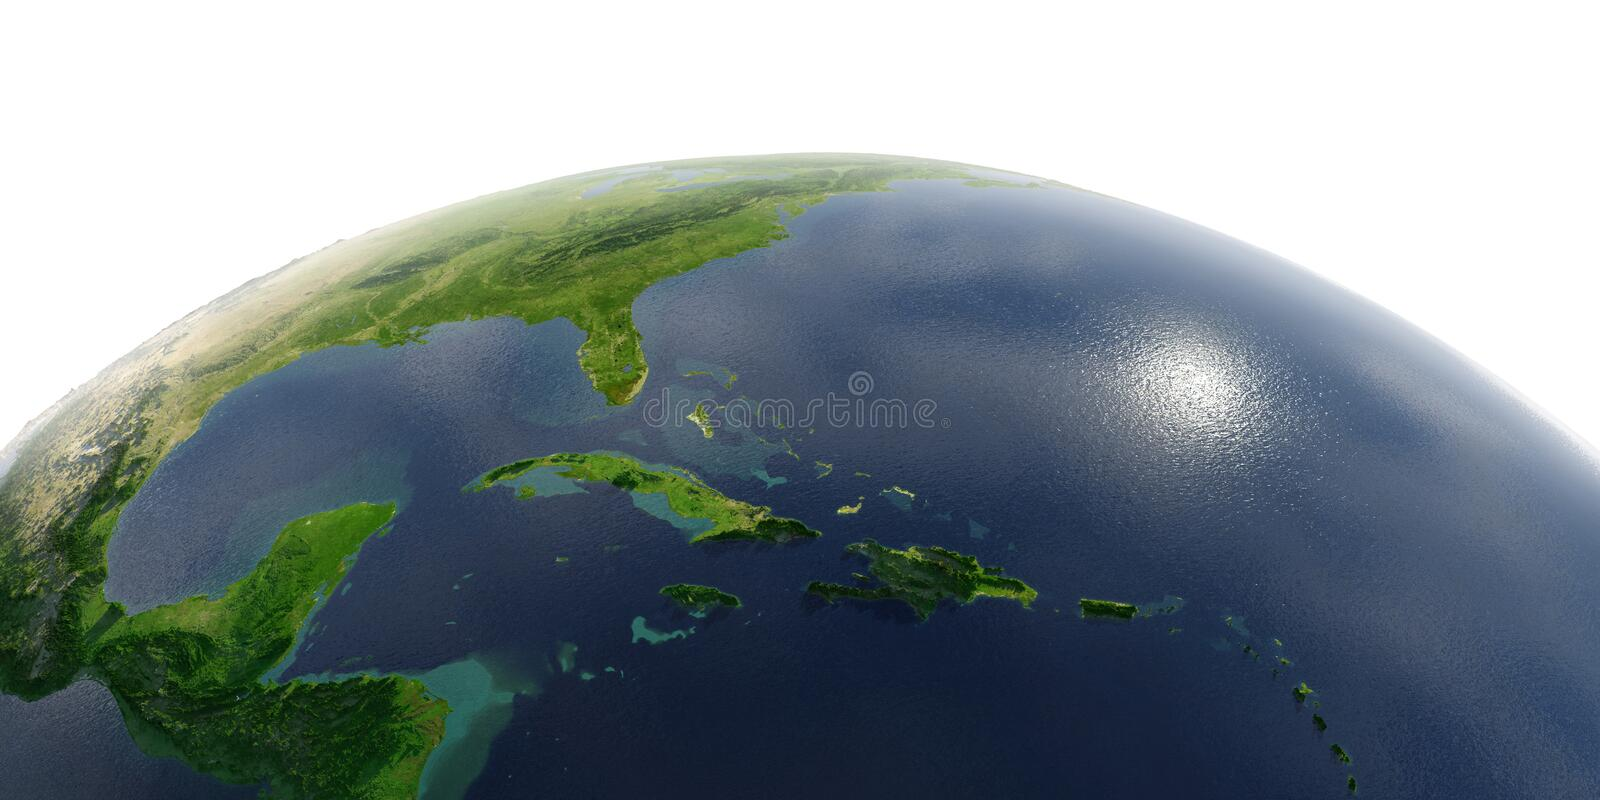 Detailed Earth on white background. Caribbean Sea and the Gulf of Mexico. Highly detailed planet Earth with exaggerated relief and transparent oceans illuminated stock illustration